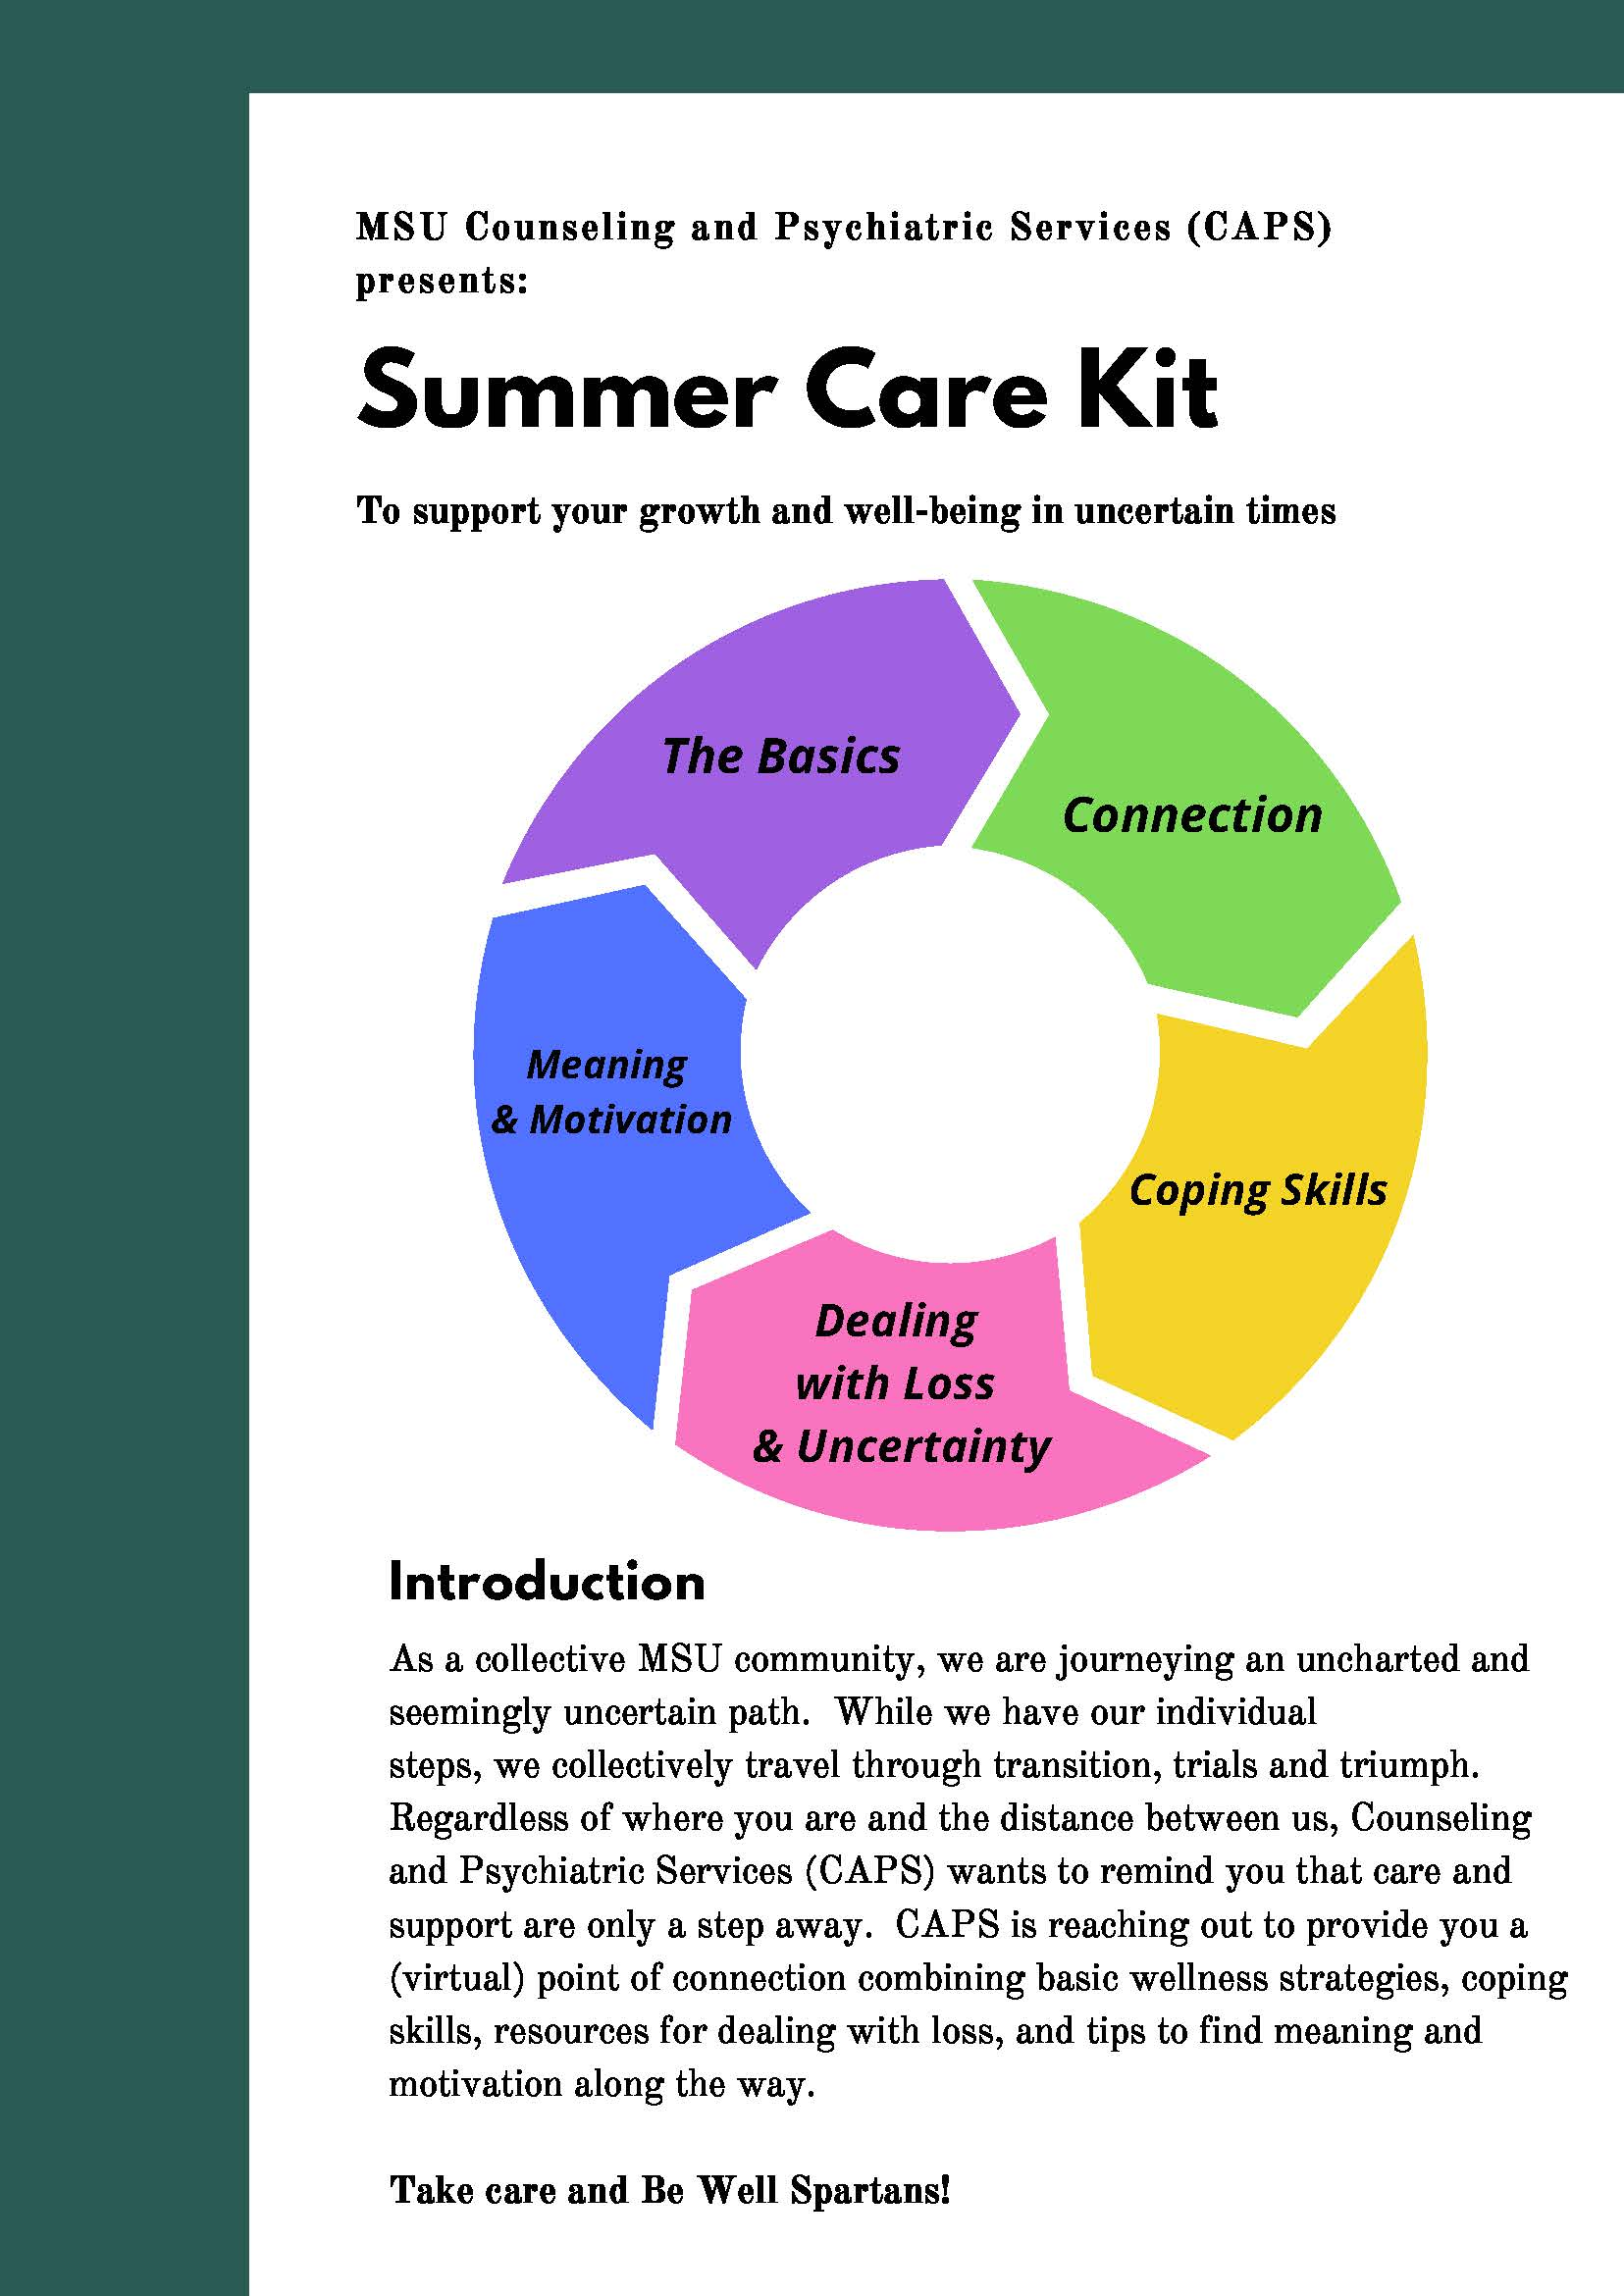 Taking Care of your Self This Summer: A Care Kit for You